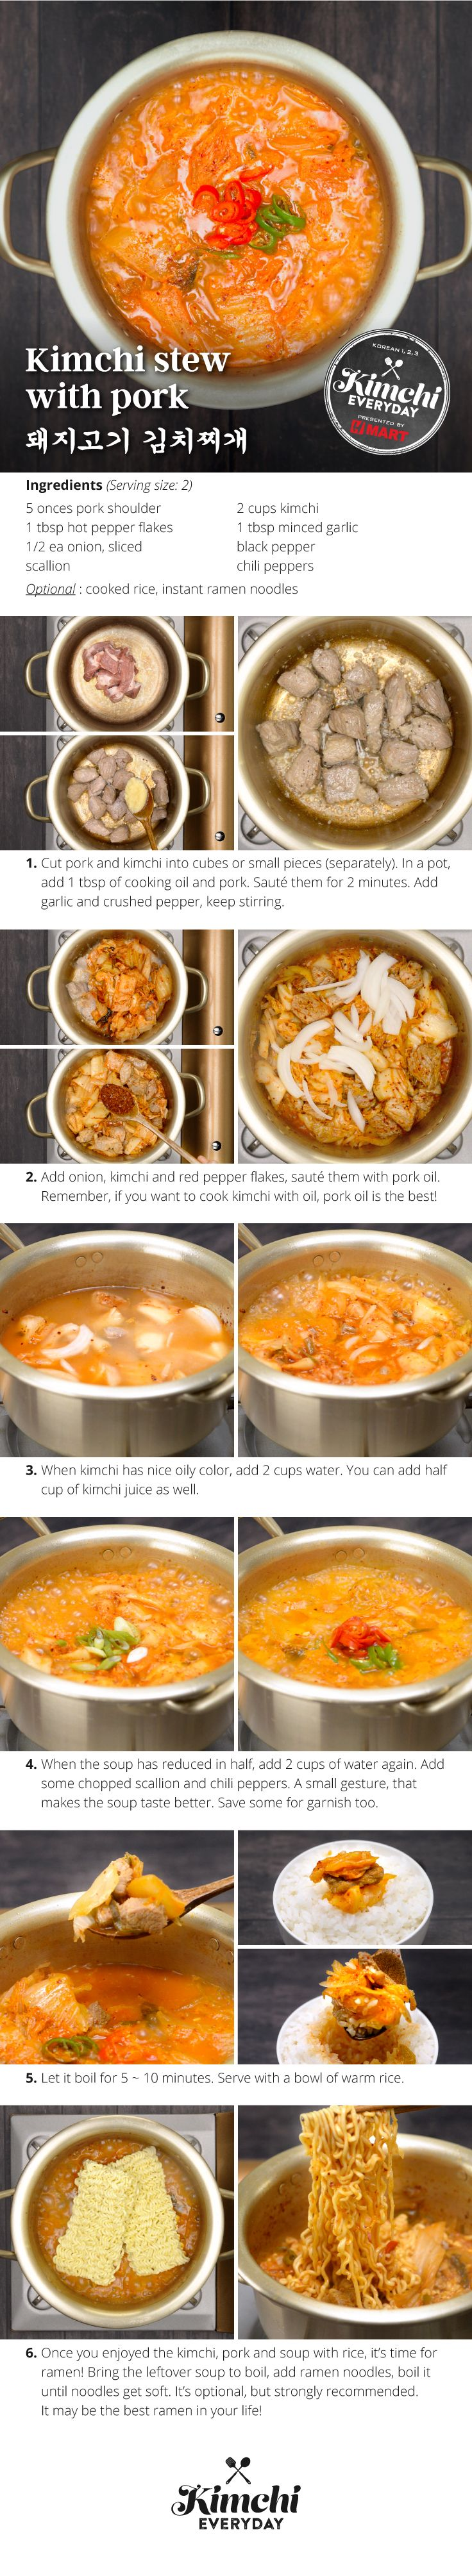 Hmart presents: How to make delicious Kimchi Stew with Pork